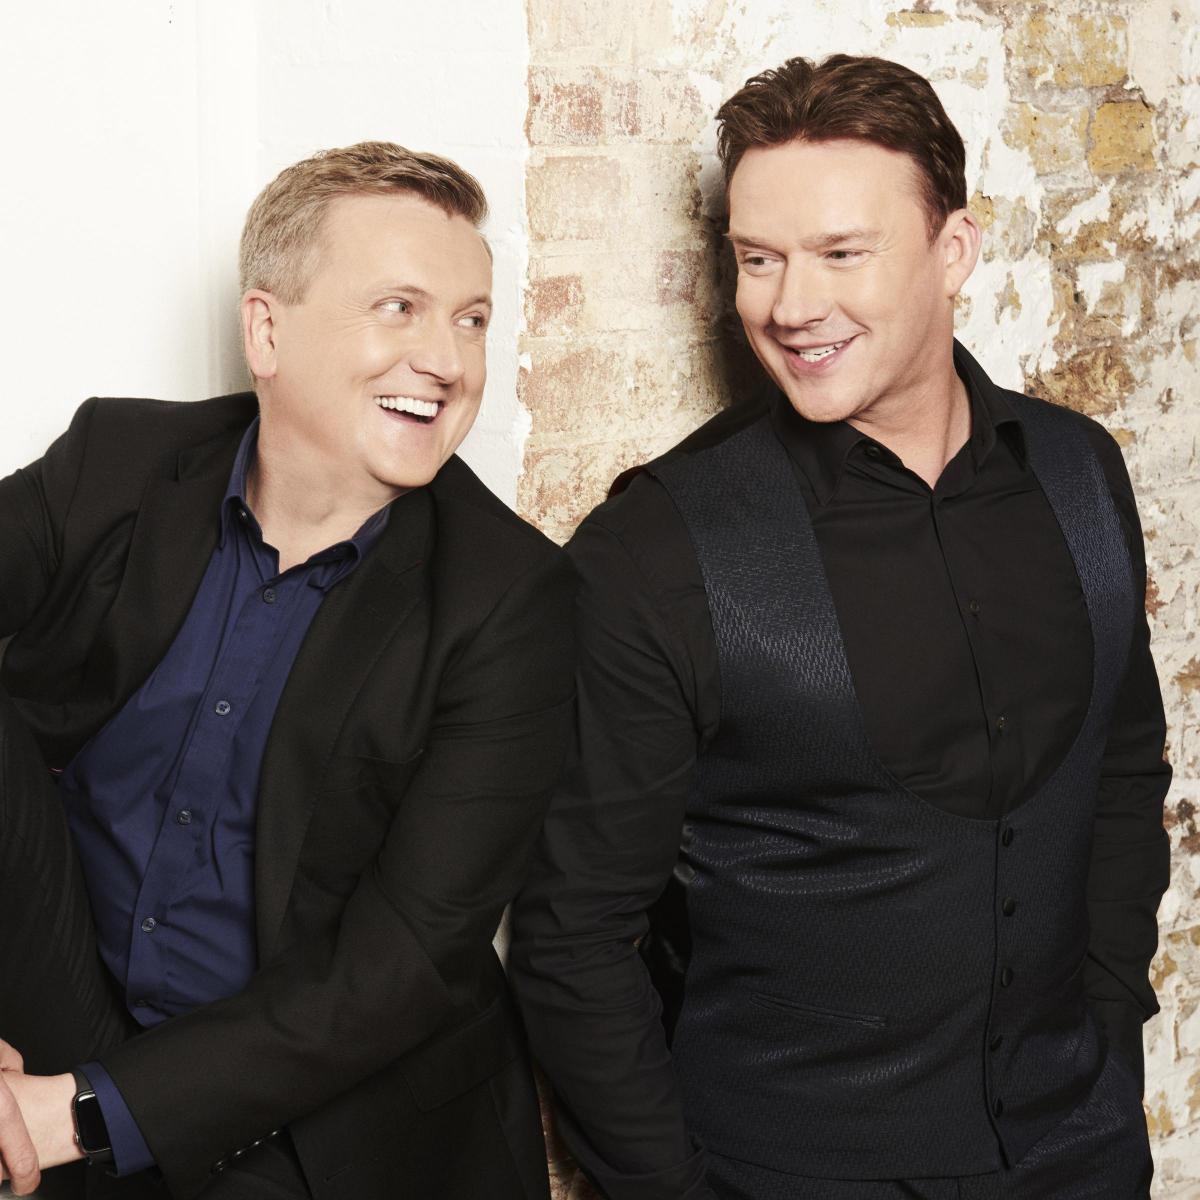 Russell Watson, Aled Jones and JB Gill from boyband JLS to